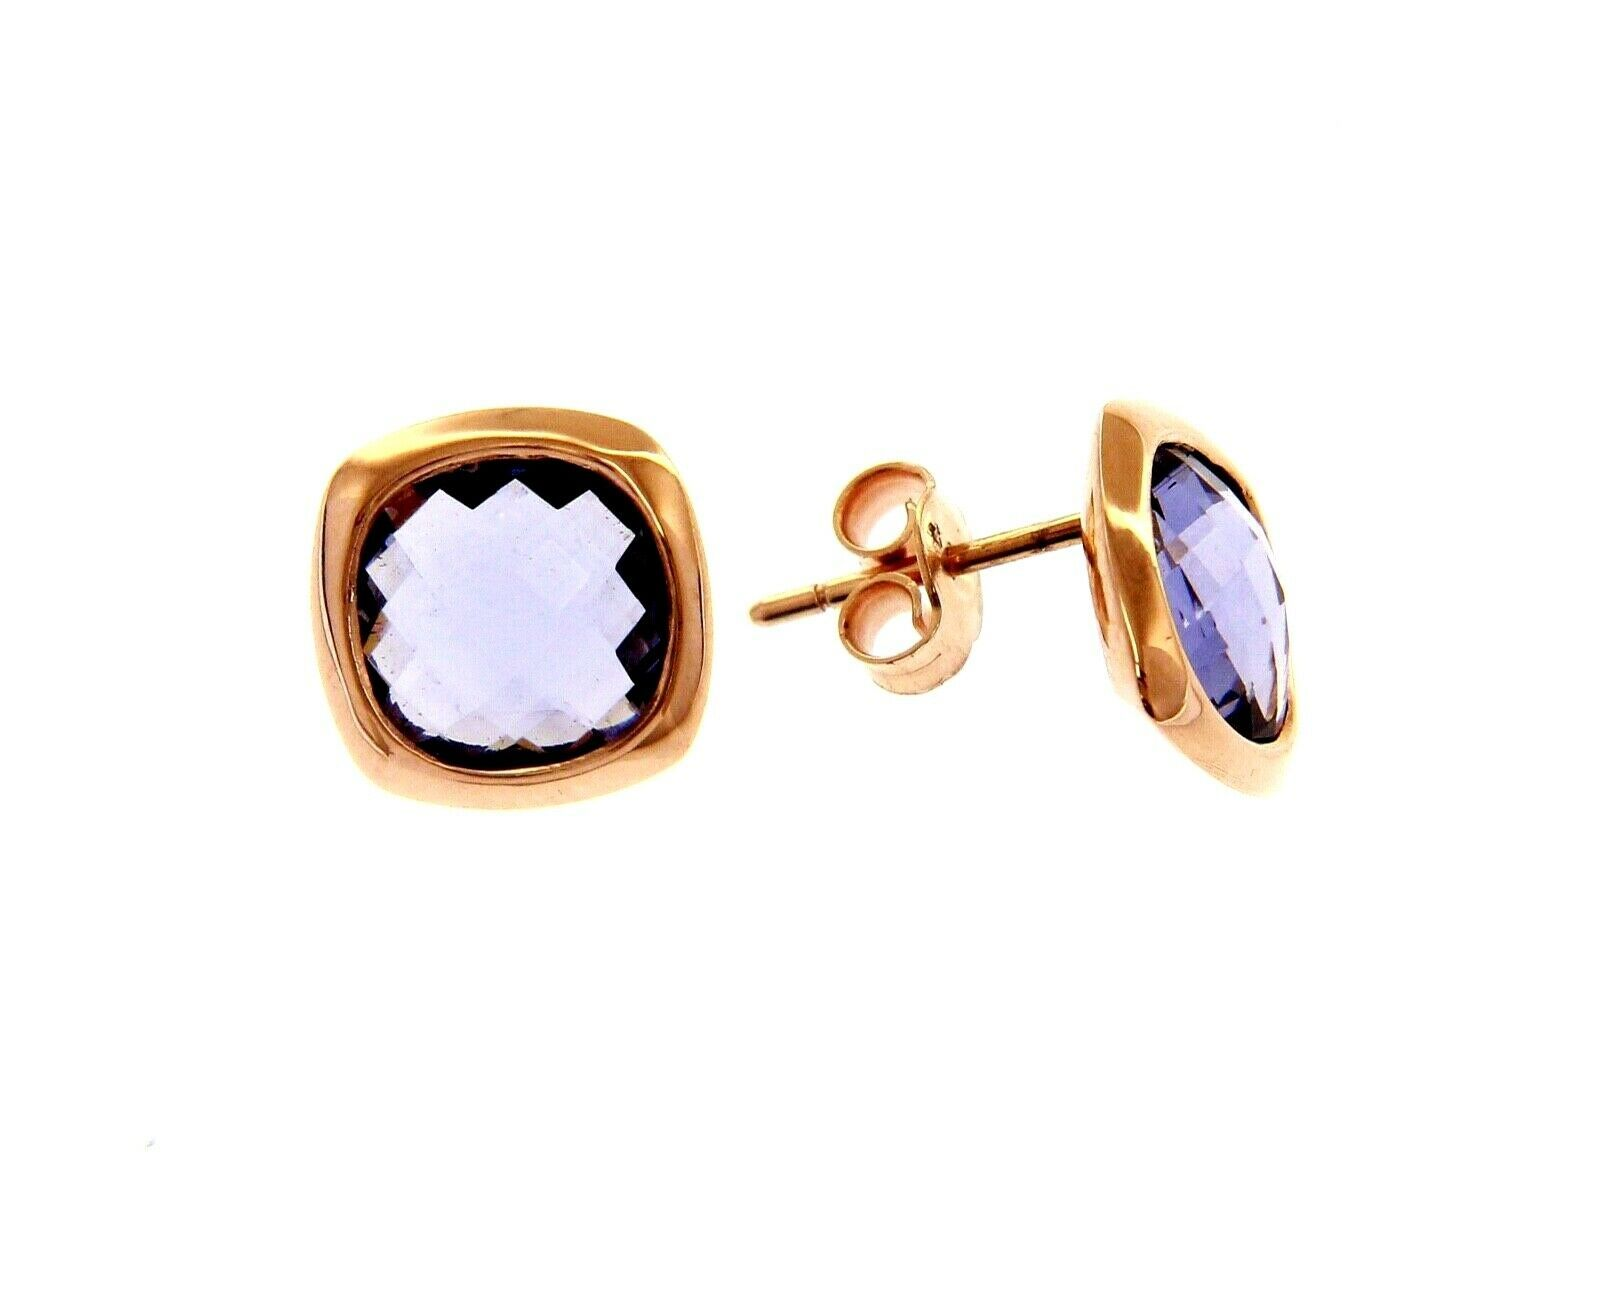 18K ROSE GOLD LOBE EARRINGS BUTTON WITH PURPLE SQUARE CRYSTAL CUSHION CUT